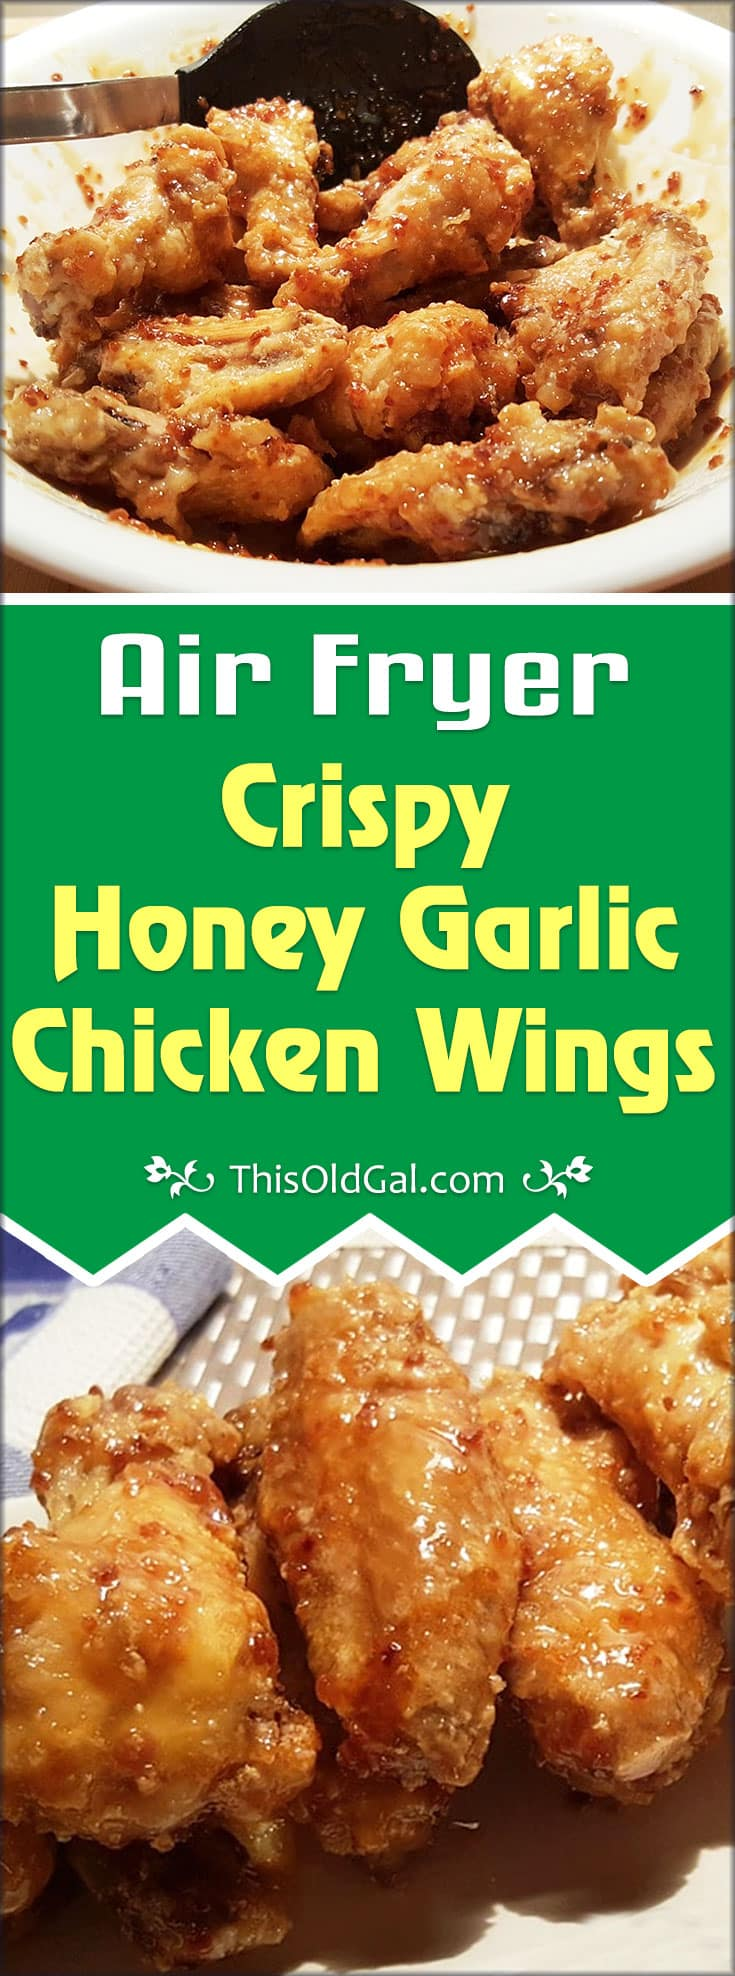 Air Fryer Crispy Honey Garlic Chicken Wings